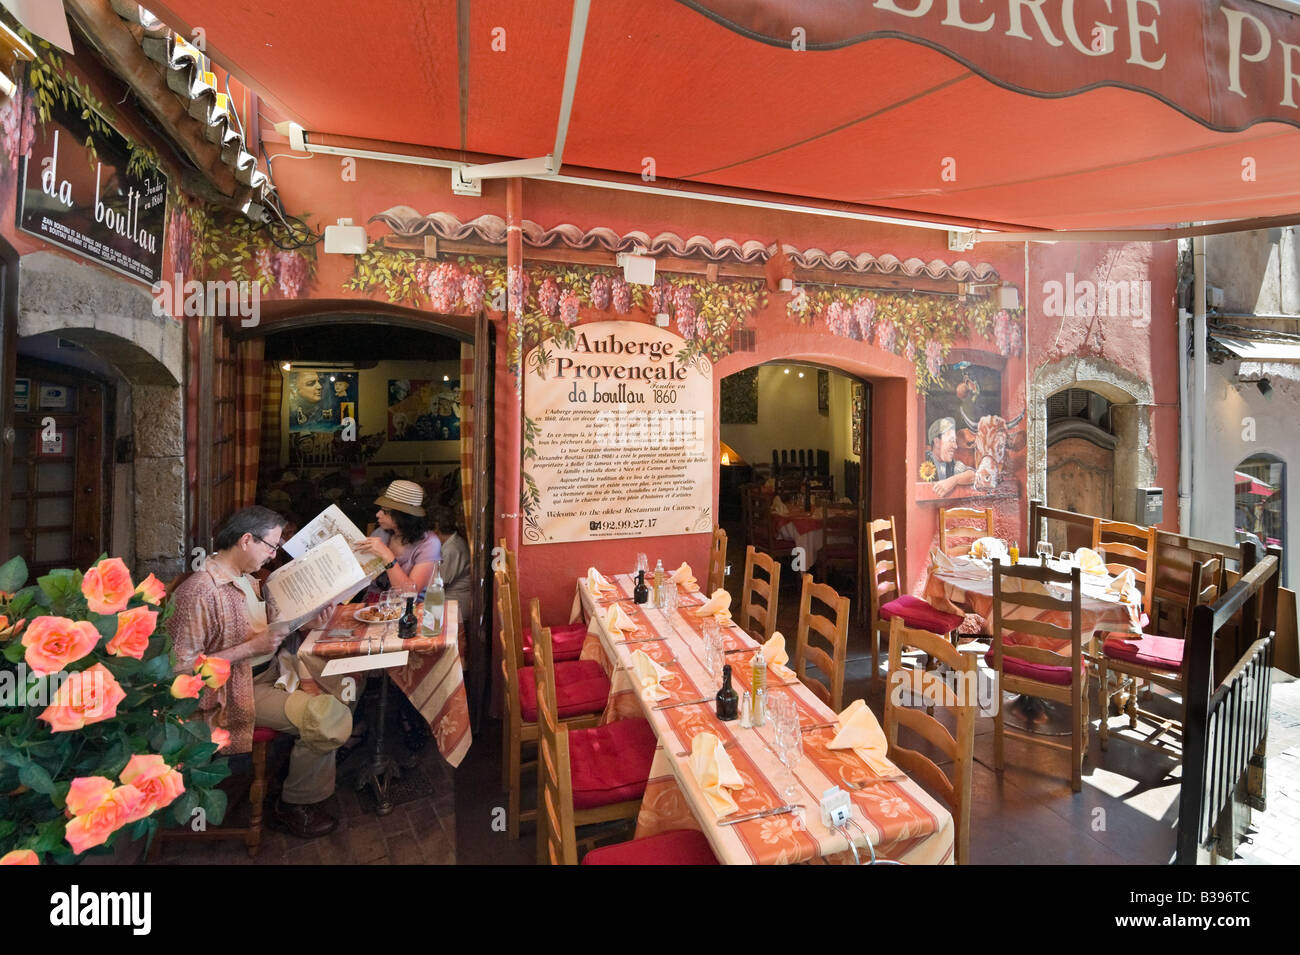 Auberge Provencale (oldest restaurant in Cannes), Rue du Suquet in the old town, Cannes, Cote d'Azur, Provence, - Stock Image